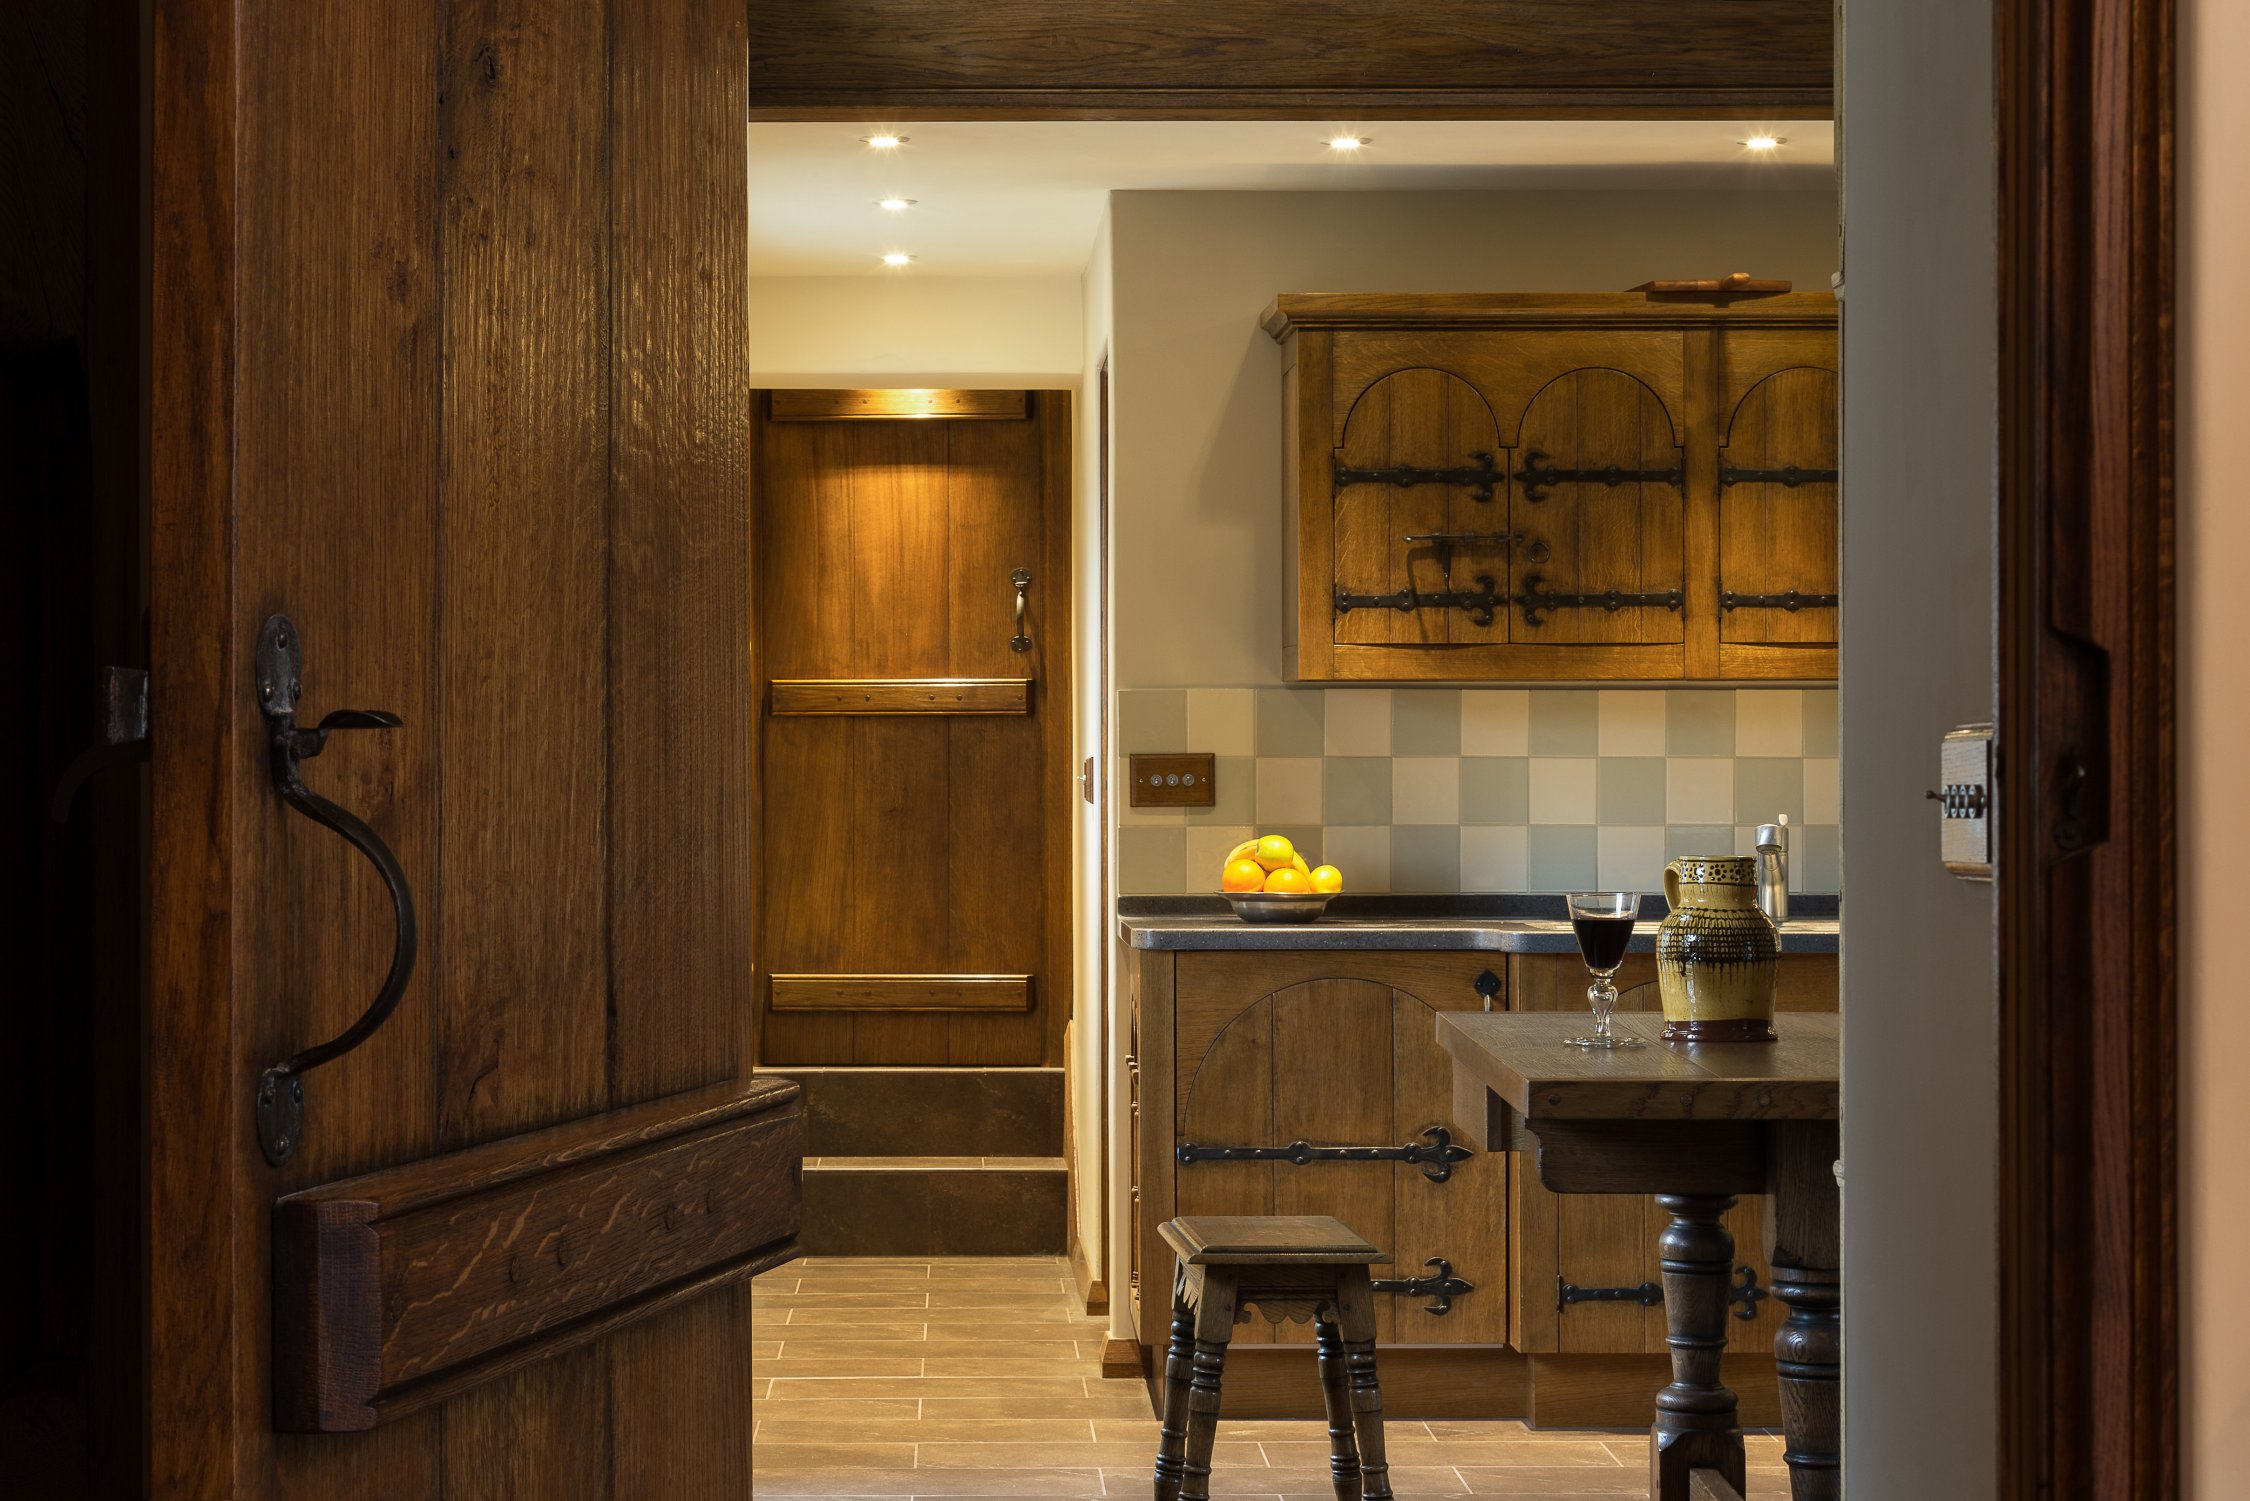 Solid oak kitchen, inspired by a medieval cupboard from Aubazine, France